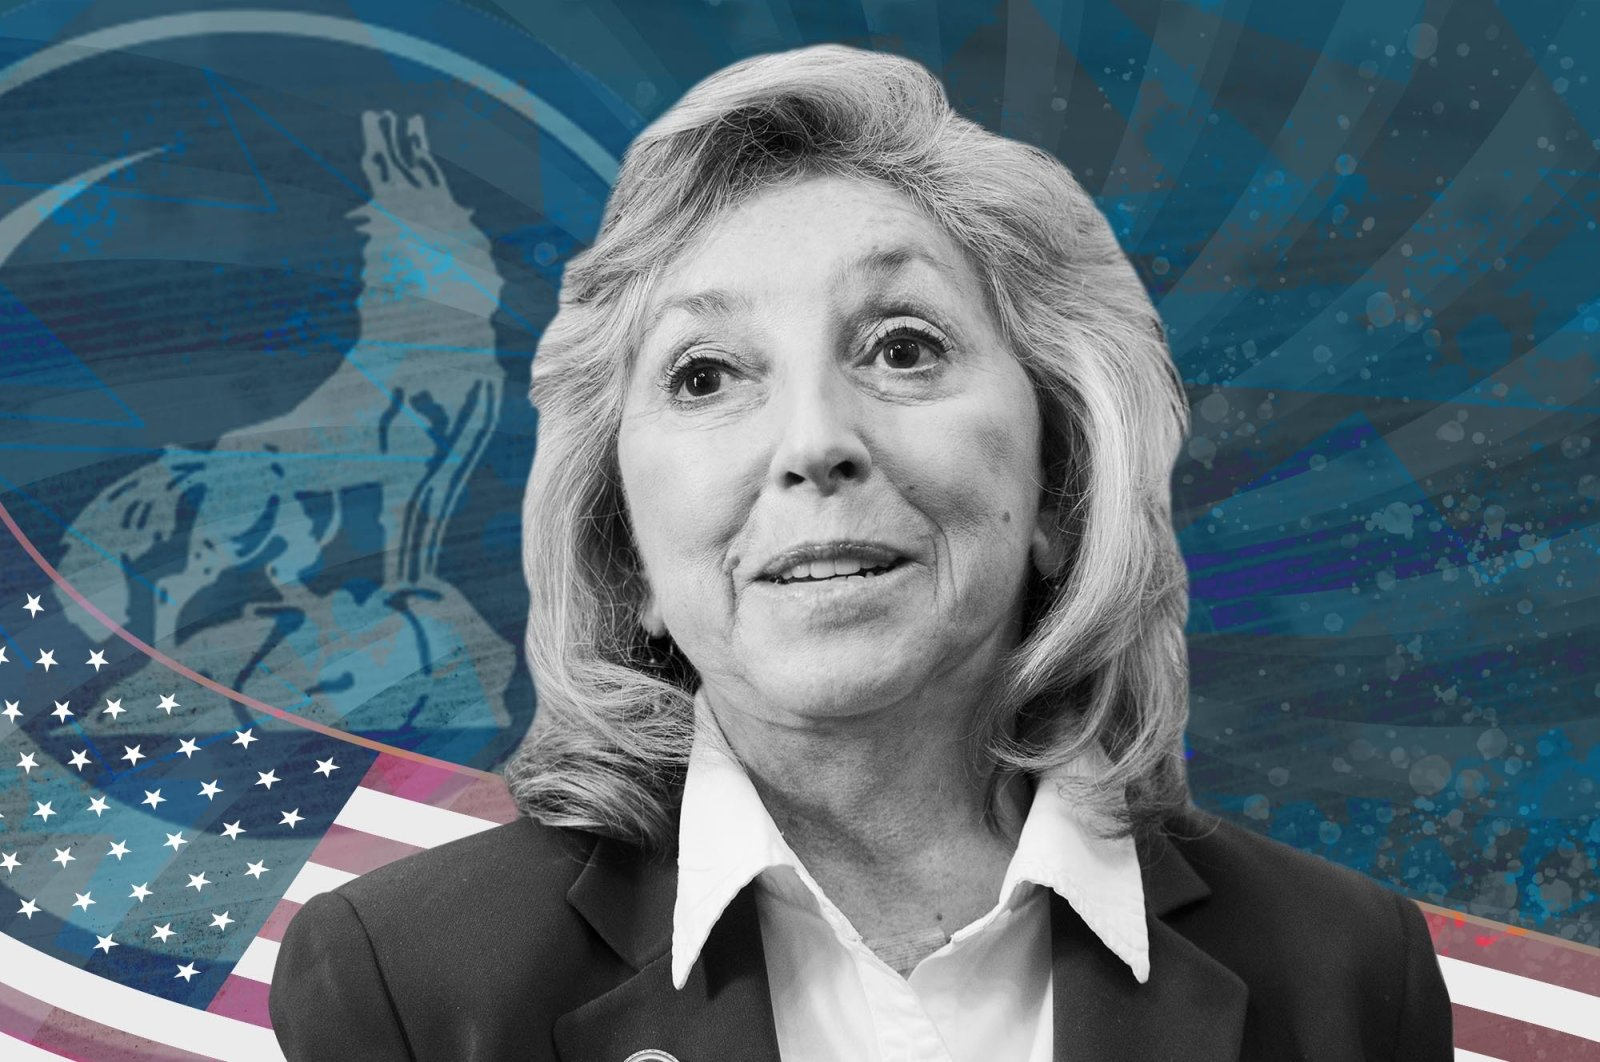 The photo illustration by Daily Sabah's Büşra Öztürk shows Nevada State Rep. Dina Titus with the logo of Grey Wolves in the background.